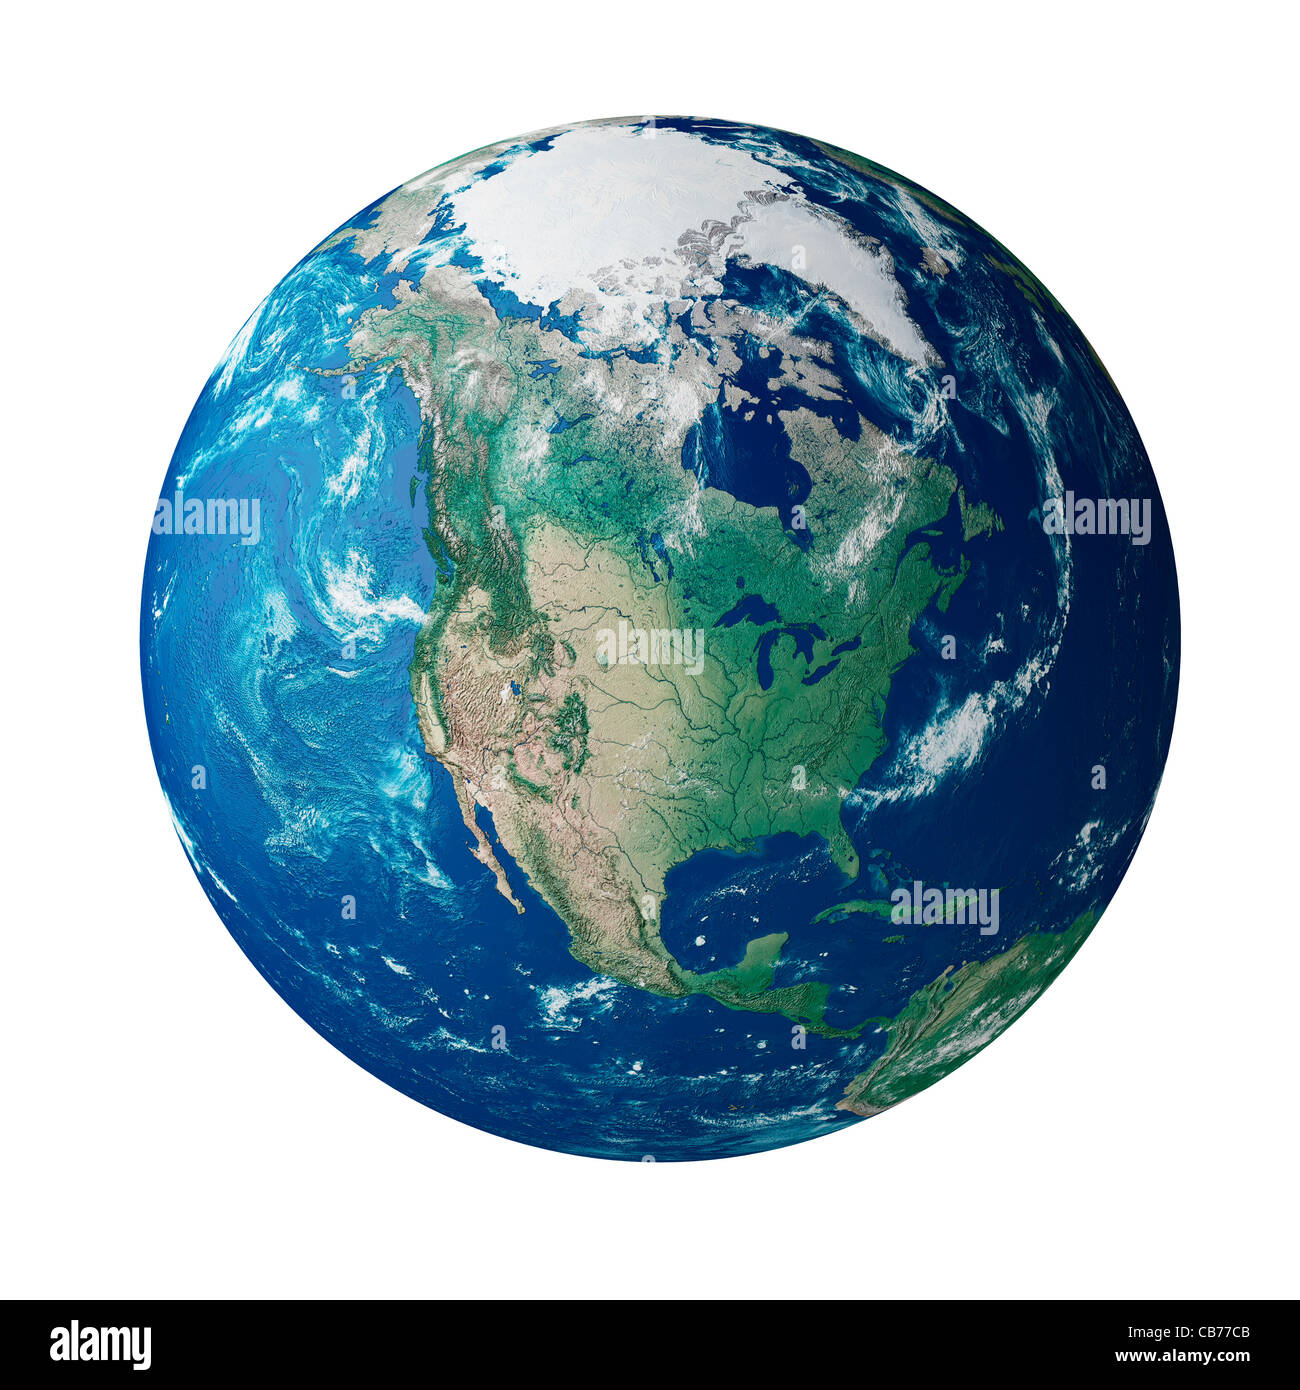 Globe showing the continent of North America on planet earth - Stock Image